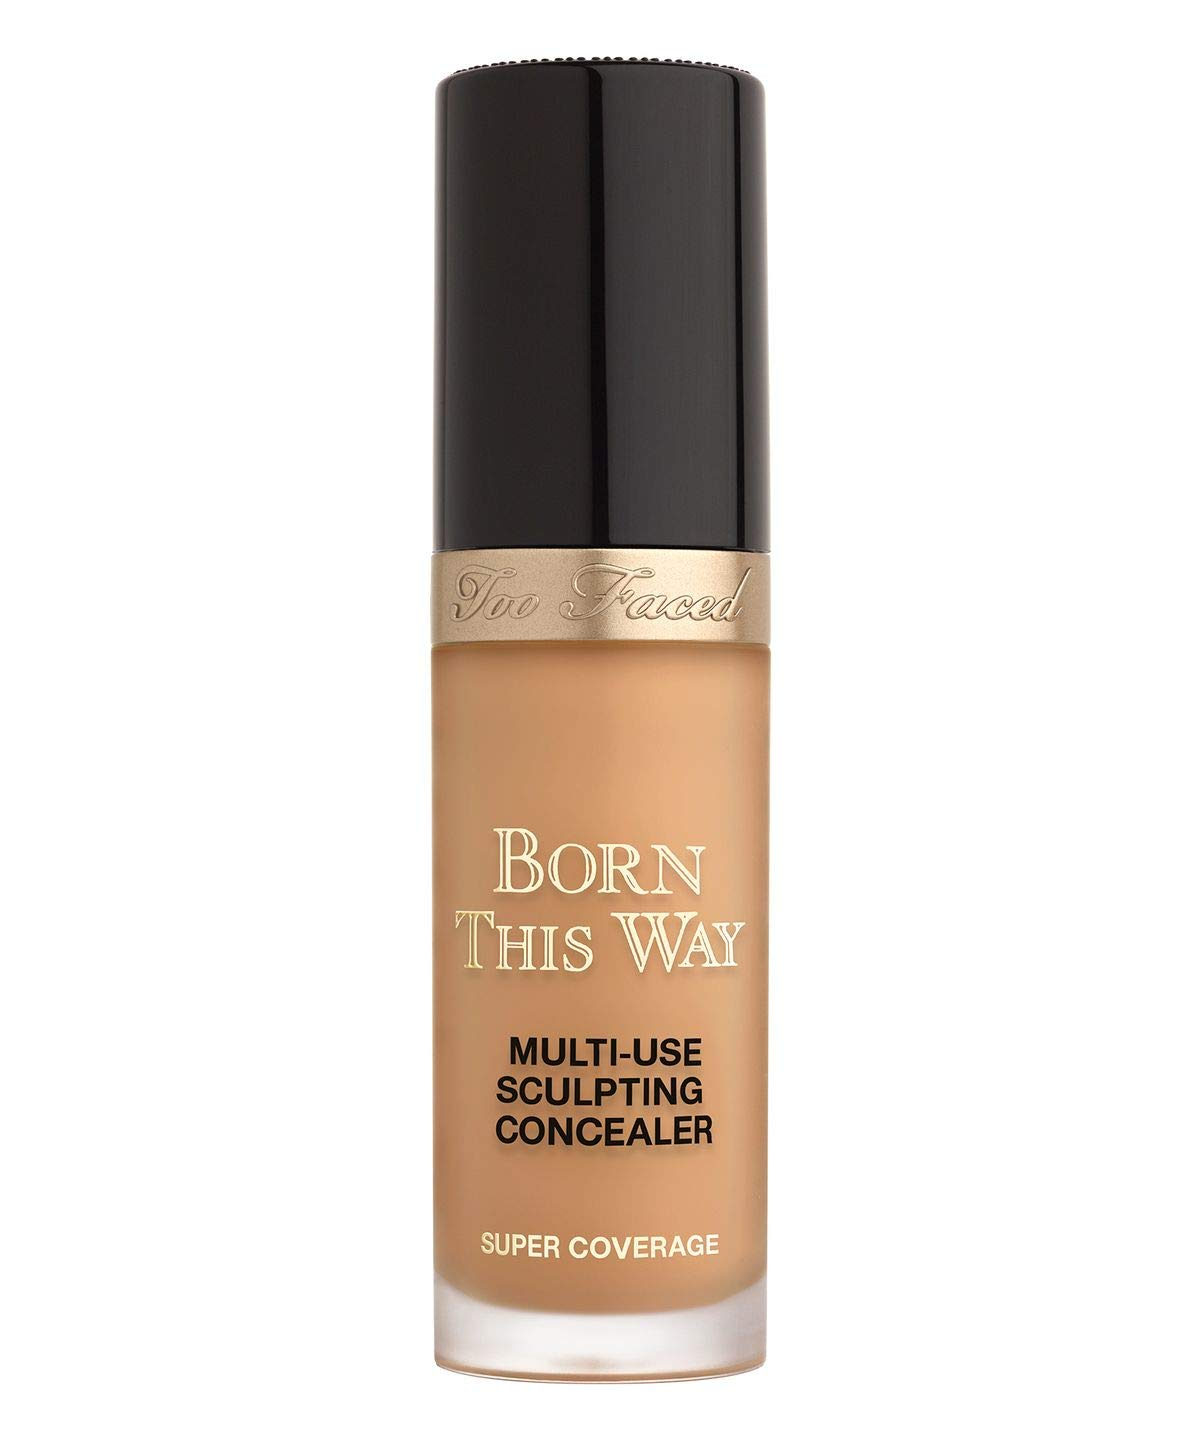 What is concealer used for?